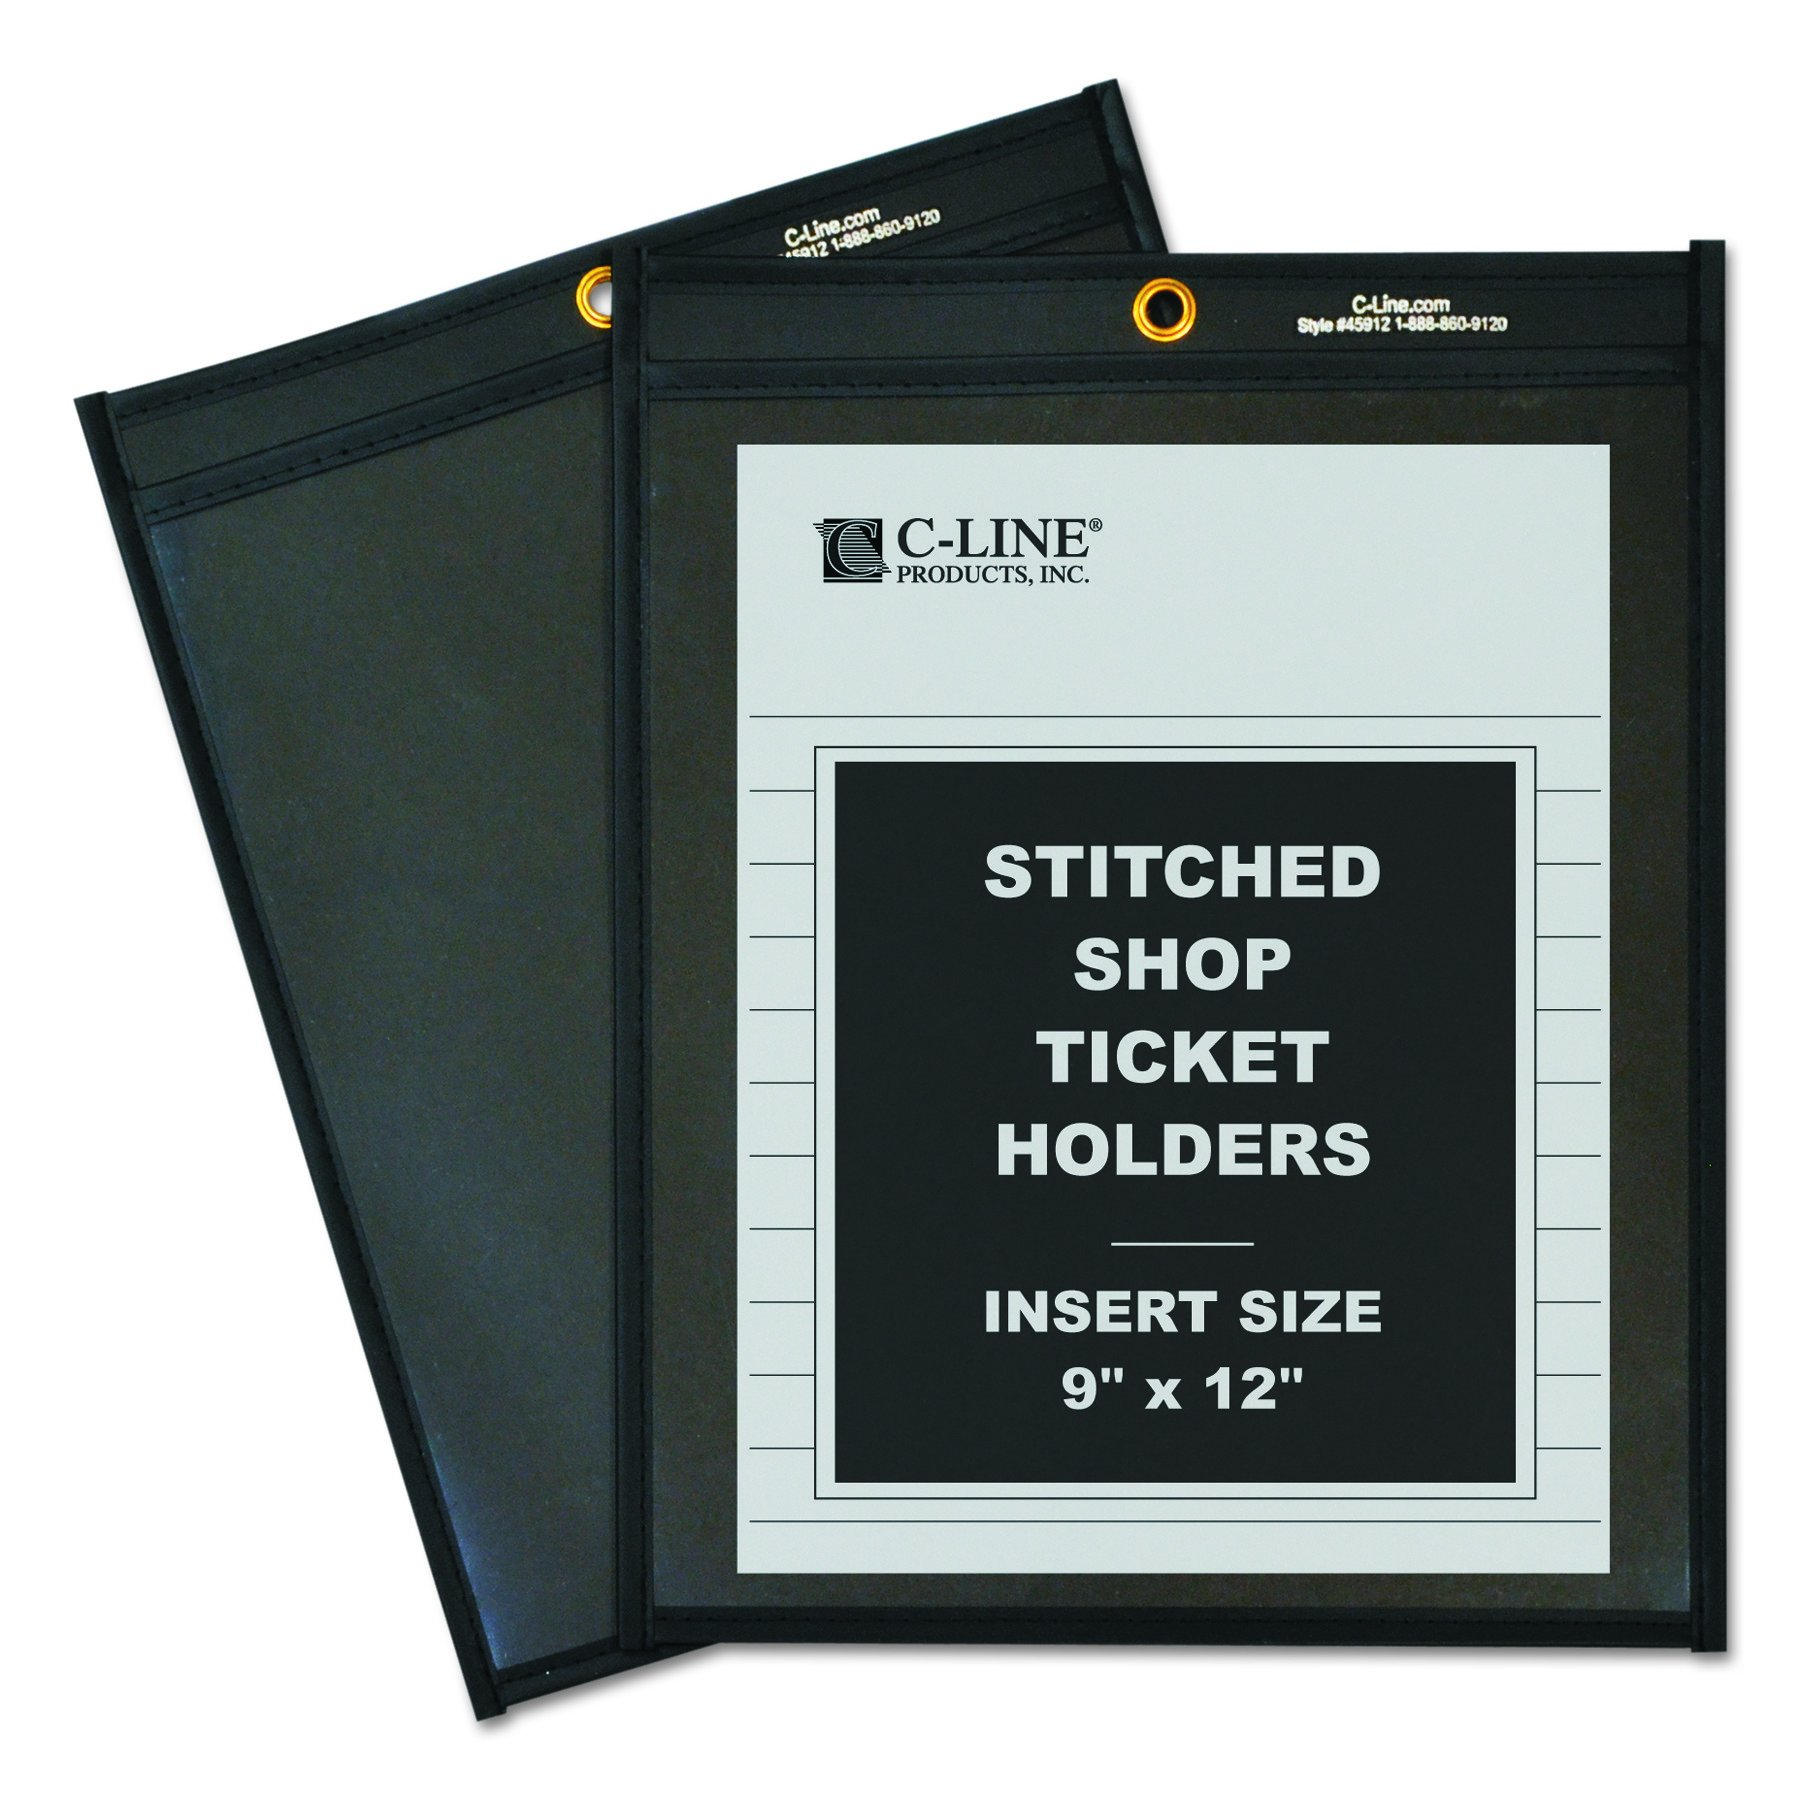 C-Line Shop Ticket Holders, Stitched, One Side Clear, 9 x 12 Inches, 25 per Box (45912) by C-Line